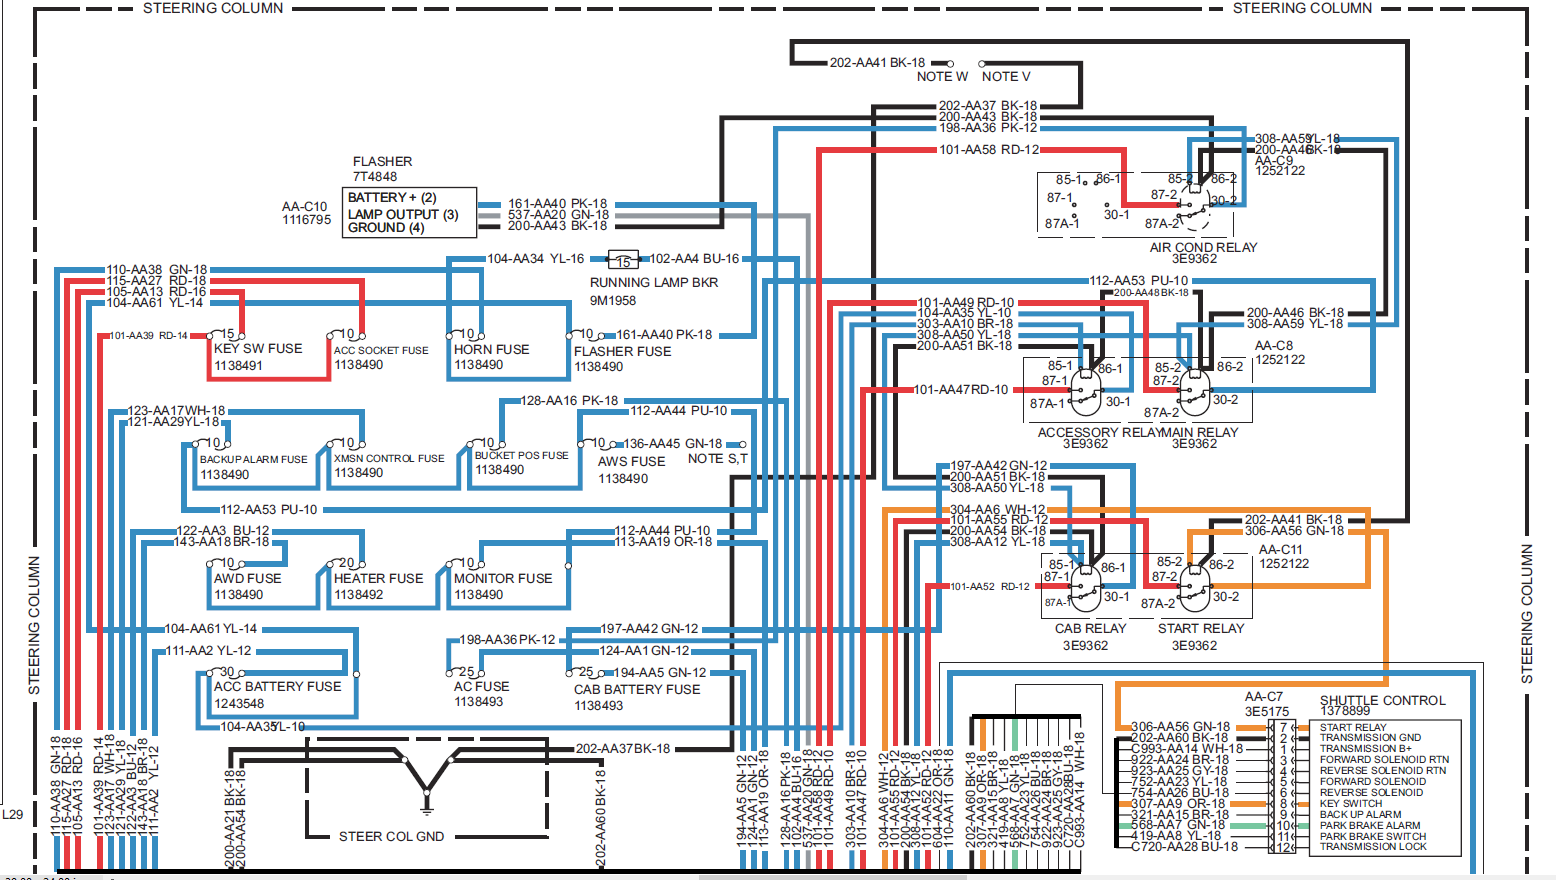 ddec ii wiring diagram 4a73 cat 416 series 2 wiring diagram wiring resources  4a73 cat 416 series 2 wiring diagram